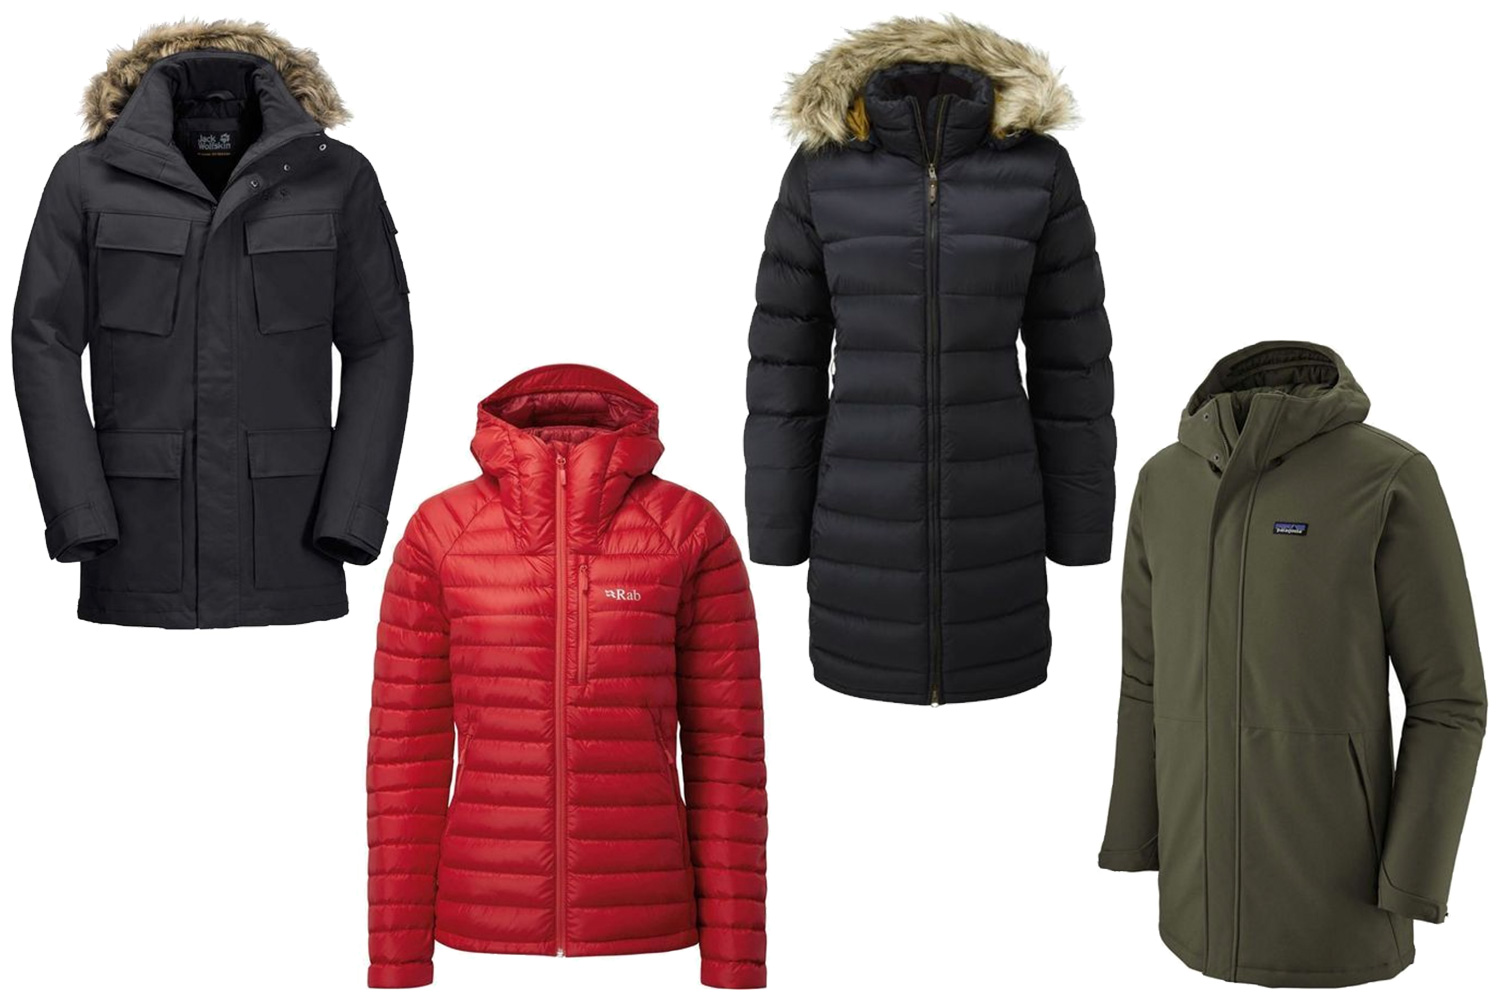 Brand jackets featured in last year's sale